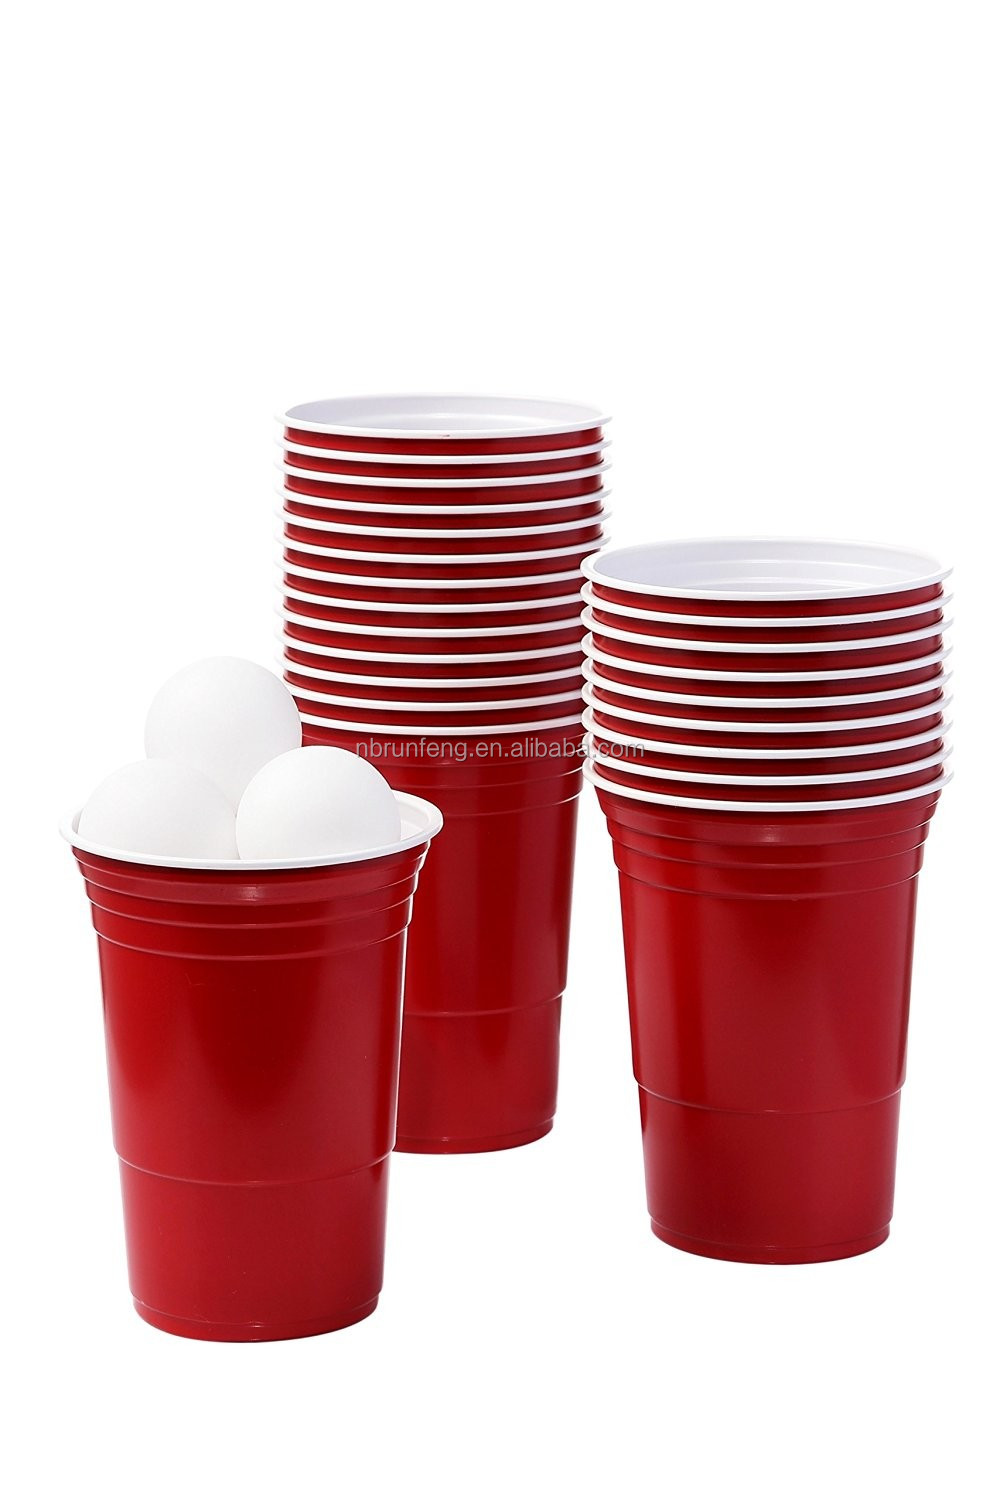 Disposable 16oz ps plastic red solo party cups